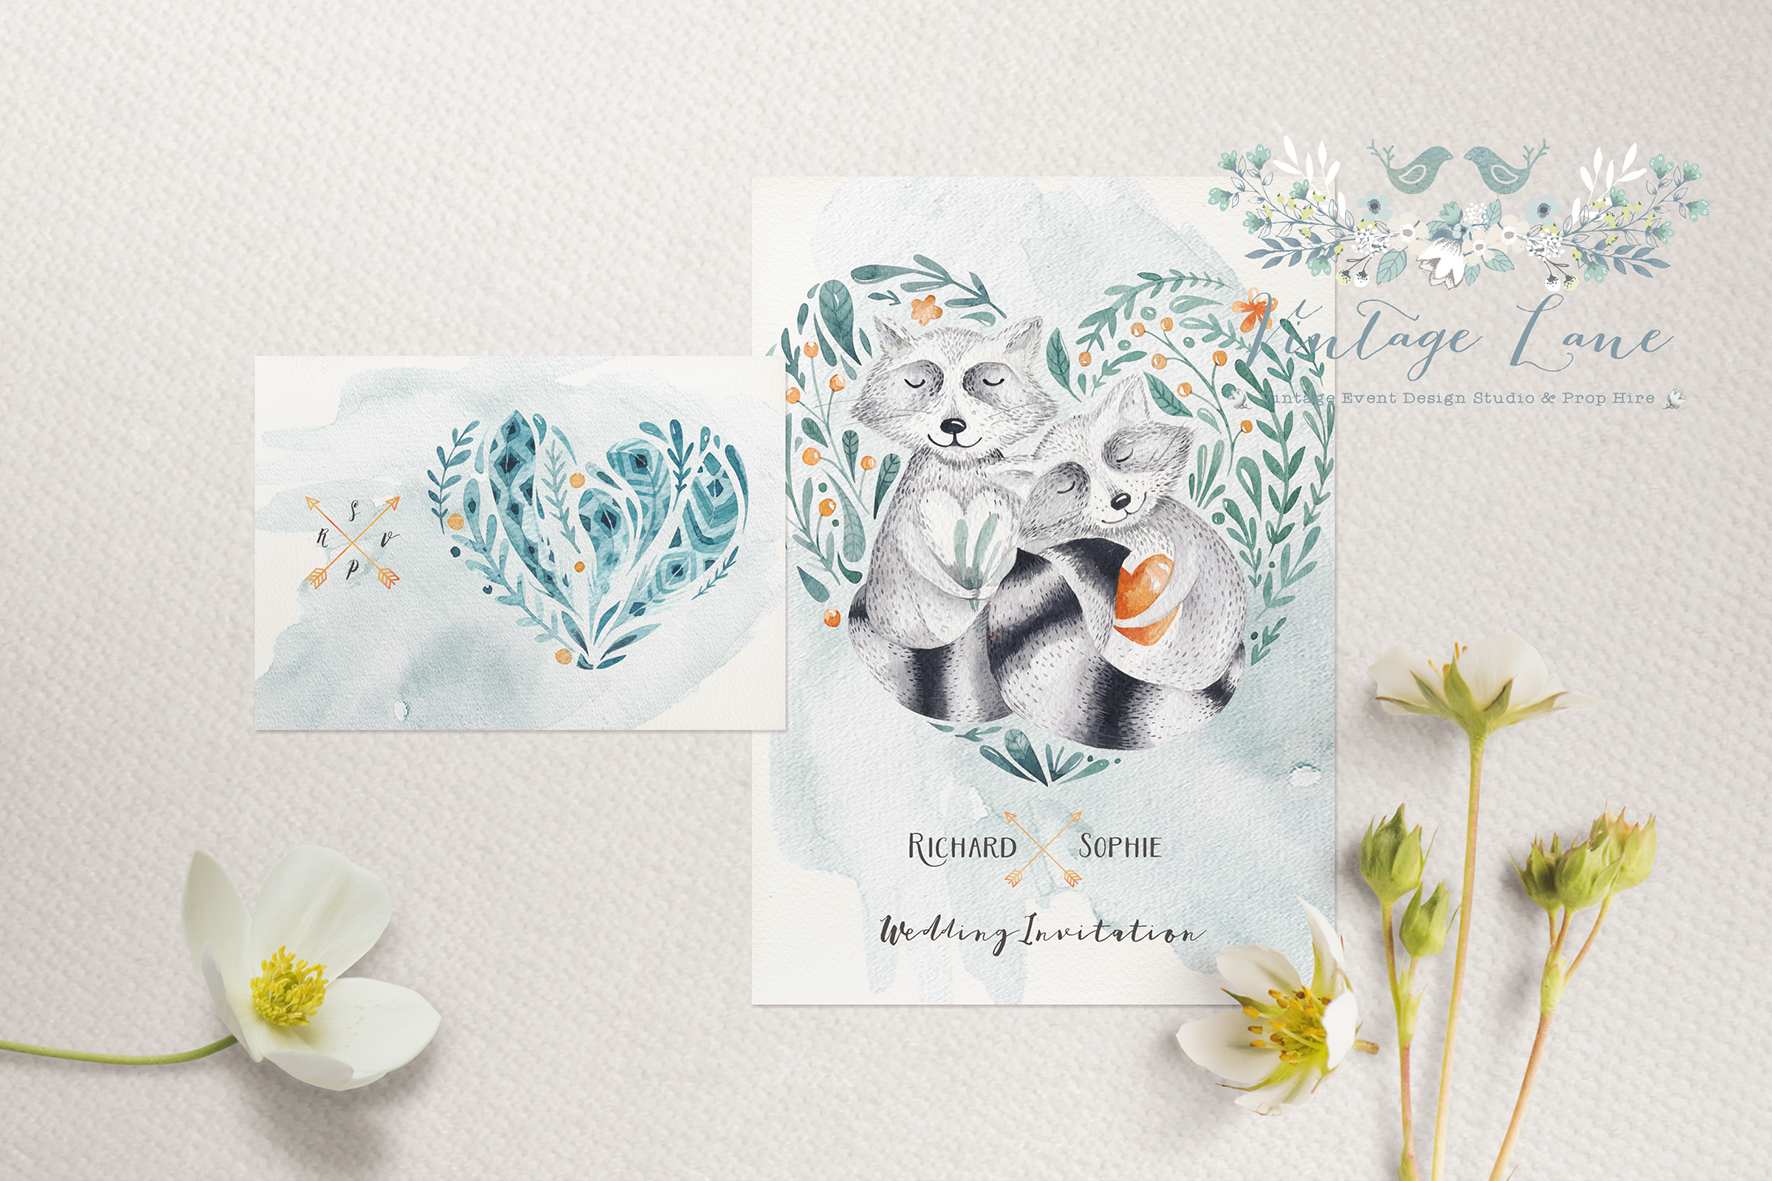 Irish wedding invitation cards